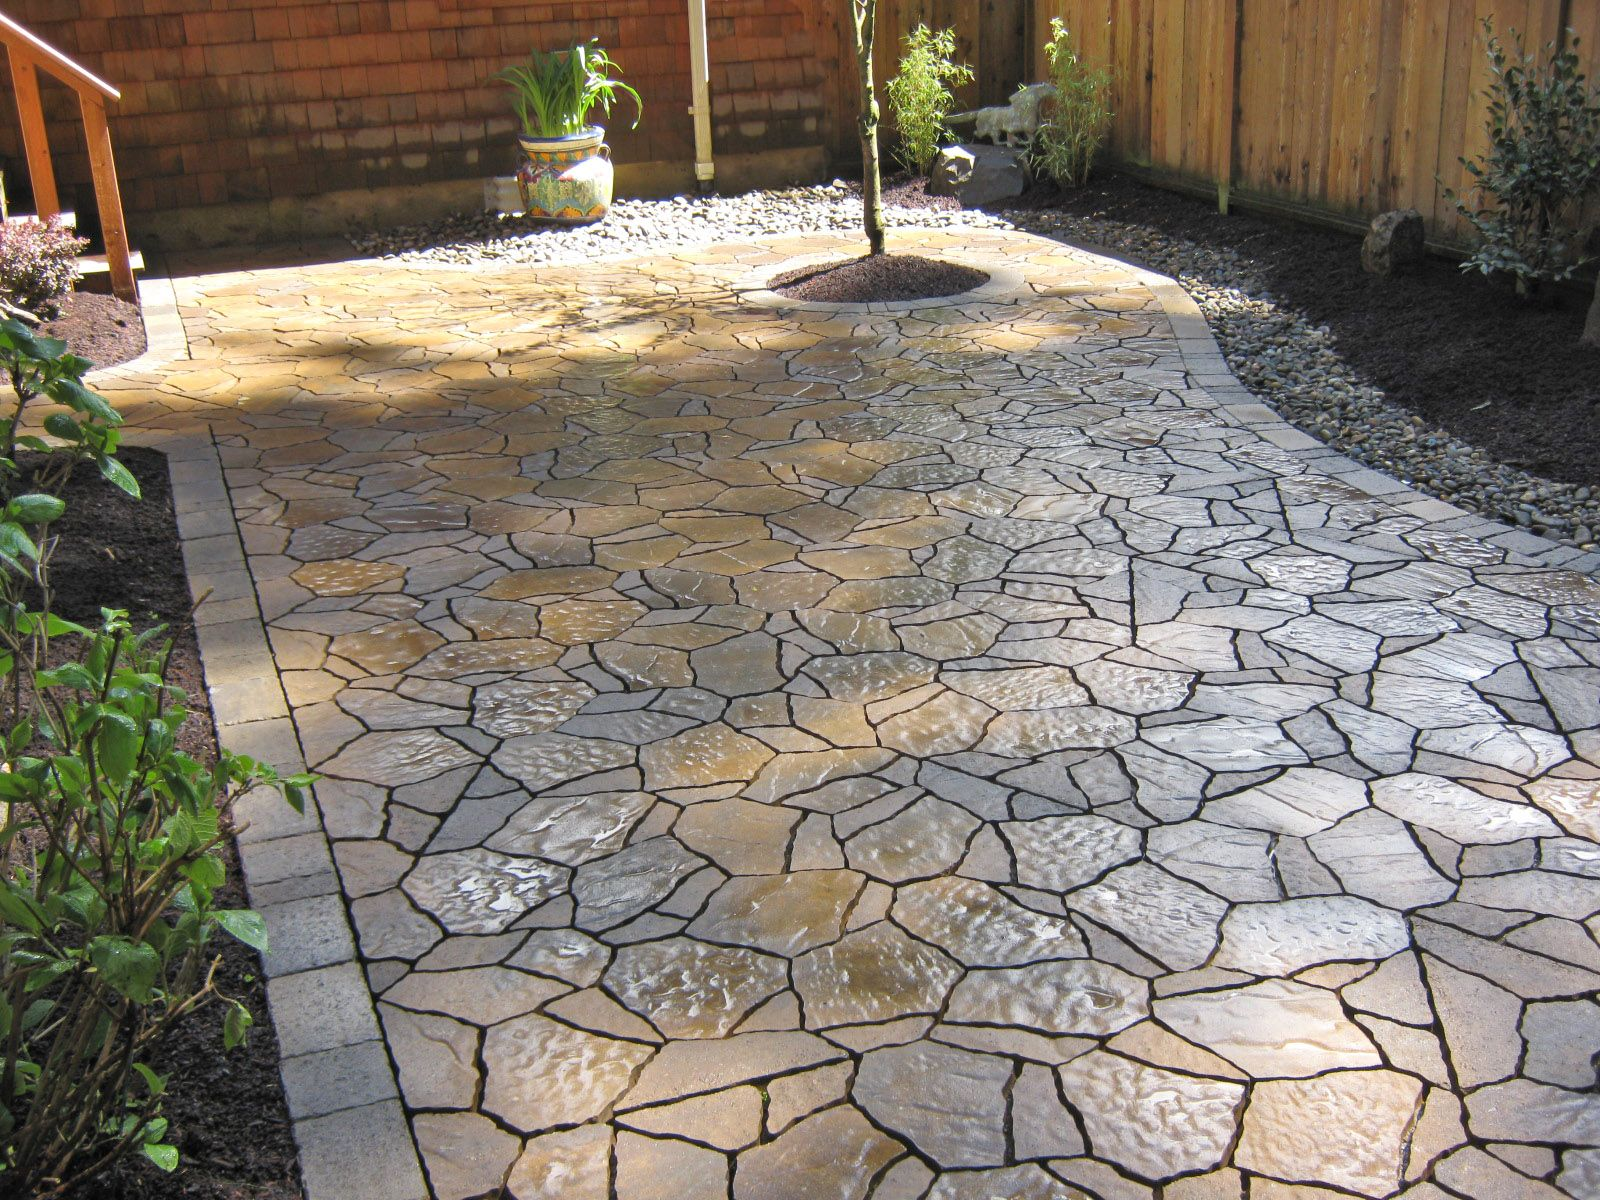 Red Grey Shade Natural Stones Colored Paver Patio Sidewalk